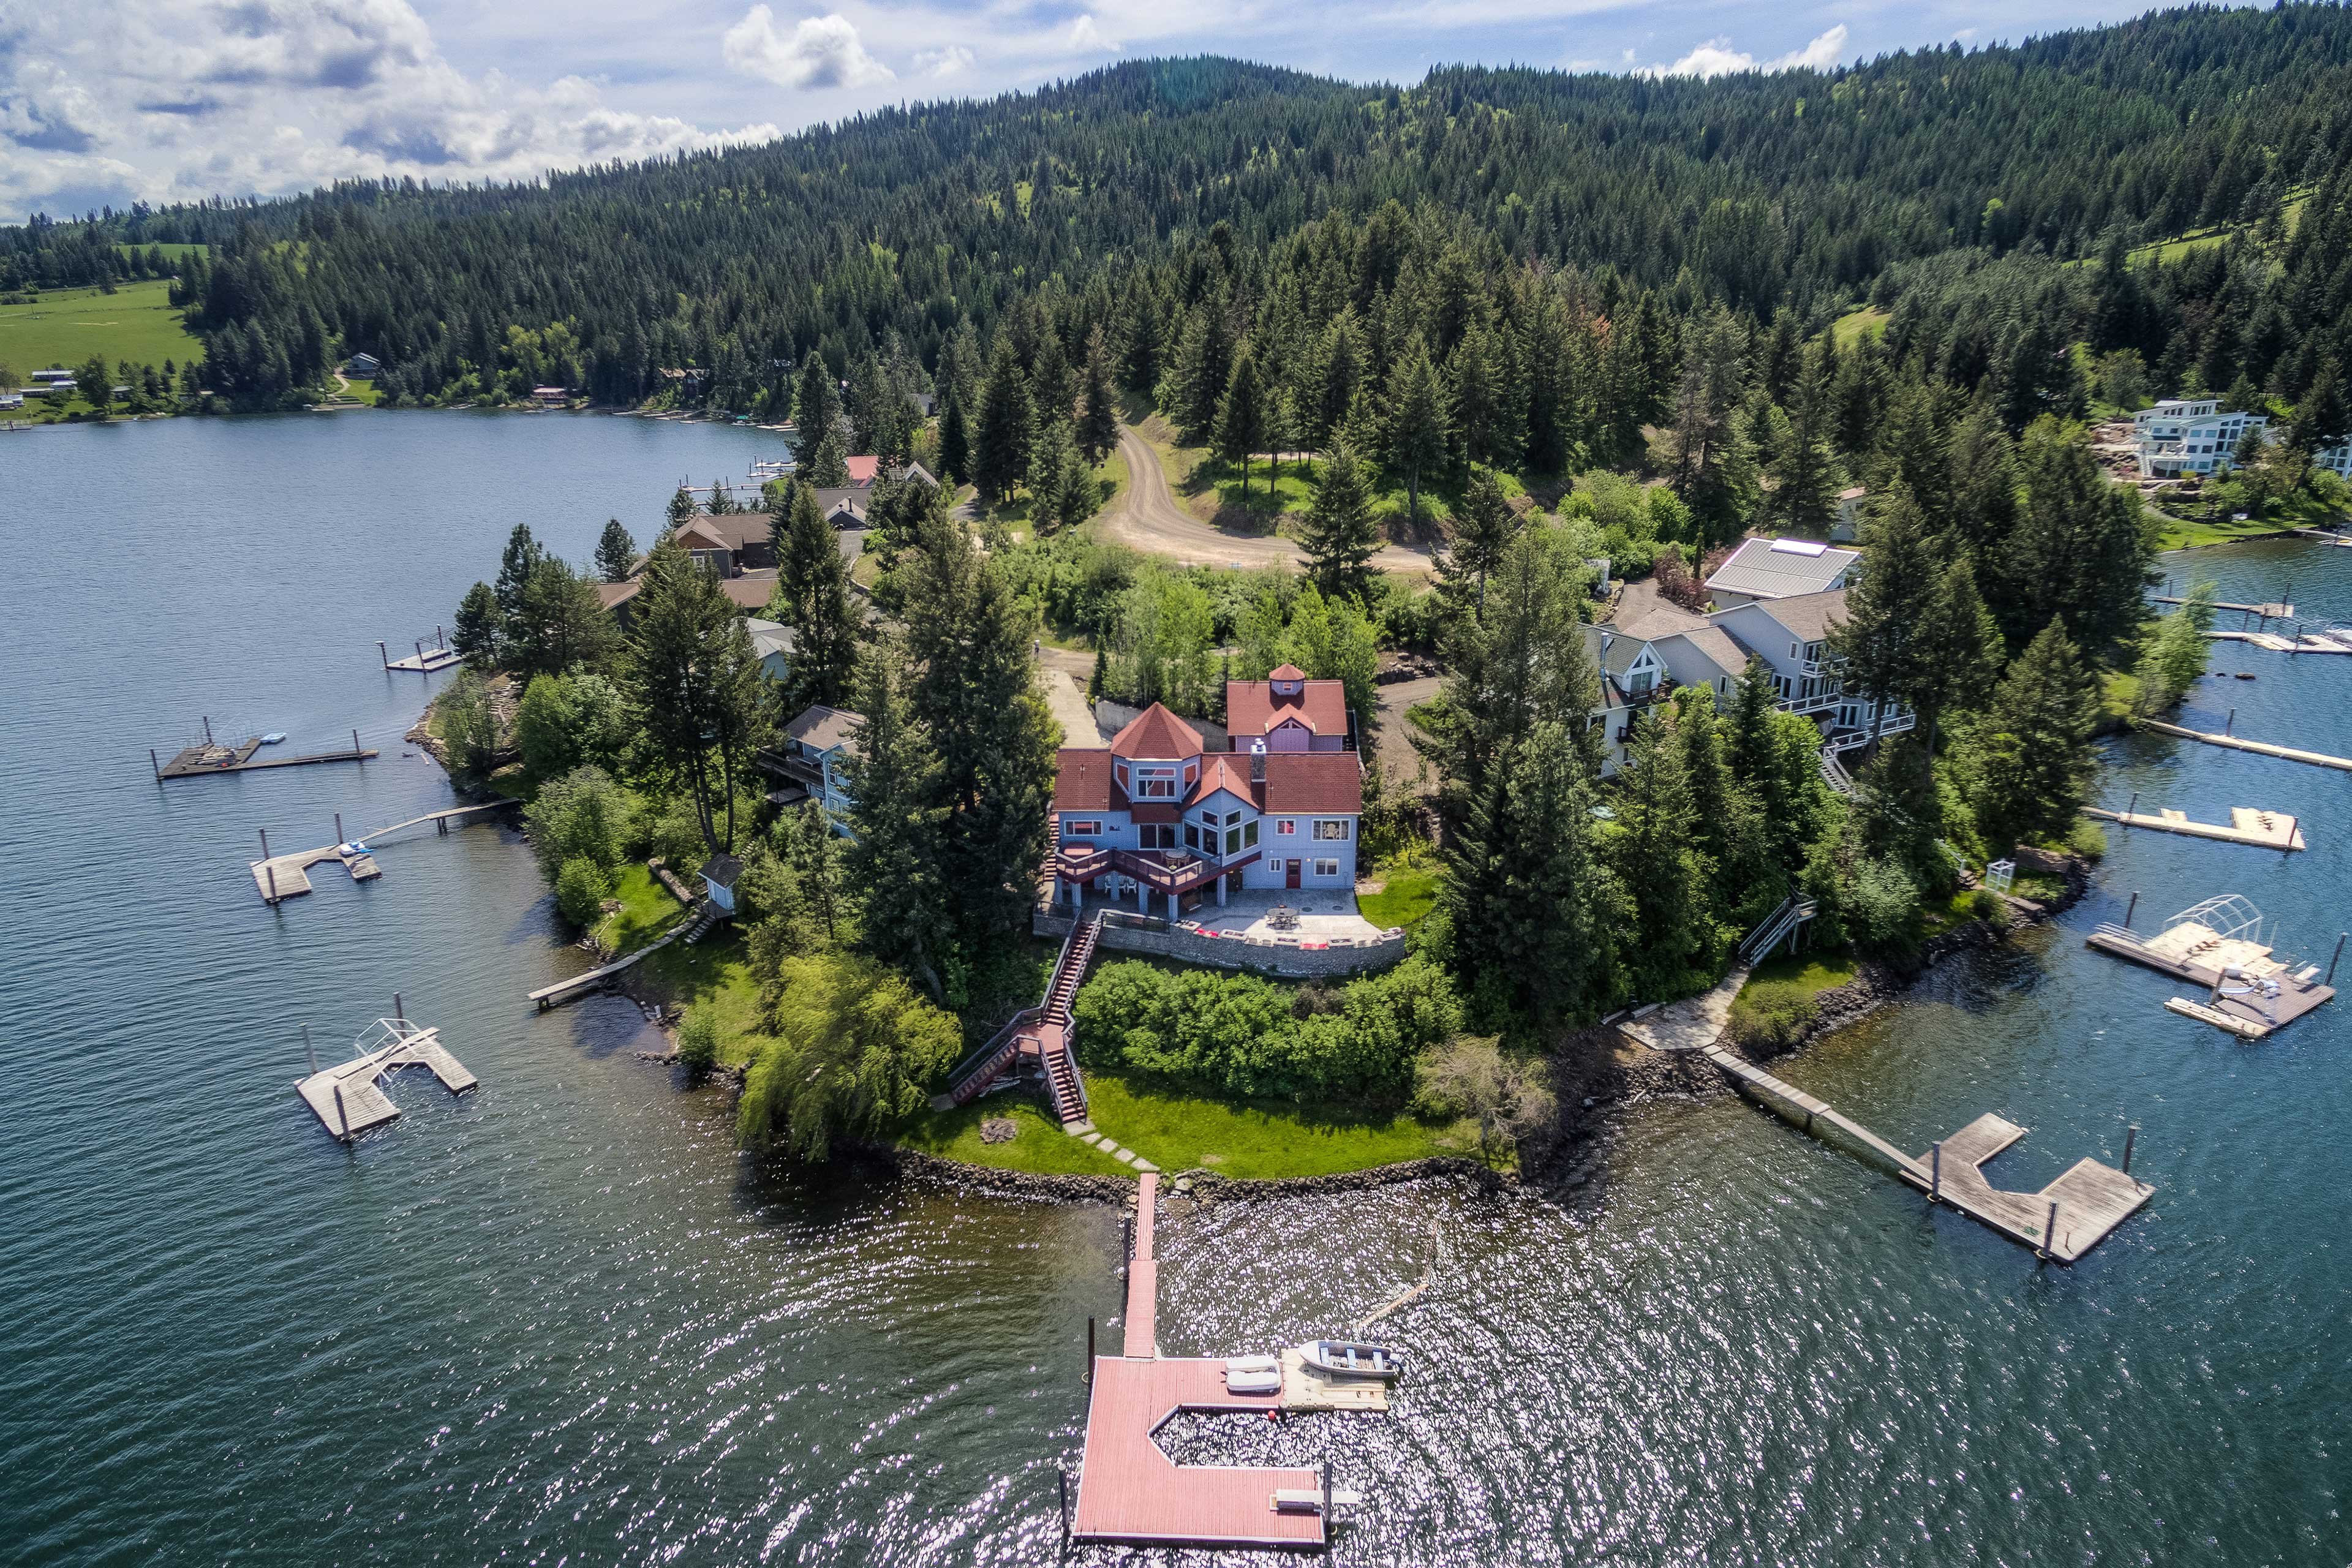 Fall in love with lakefront living at this incredible vacation home!